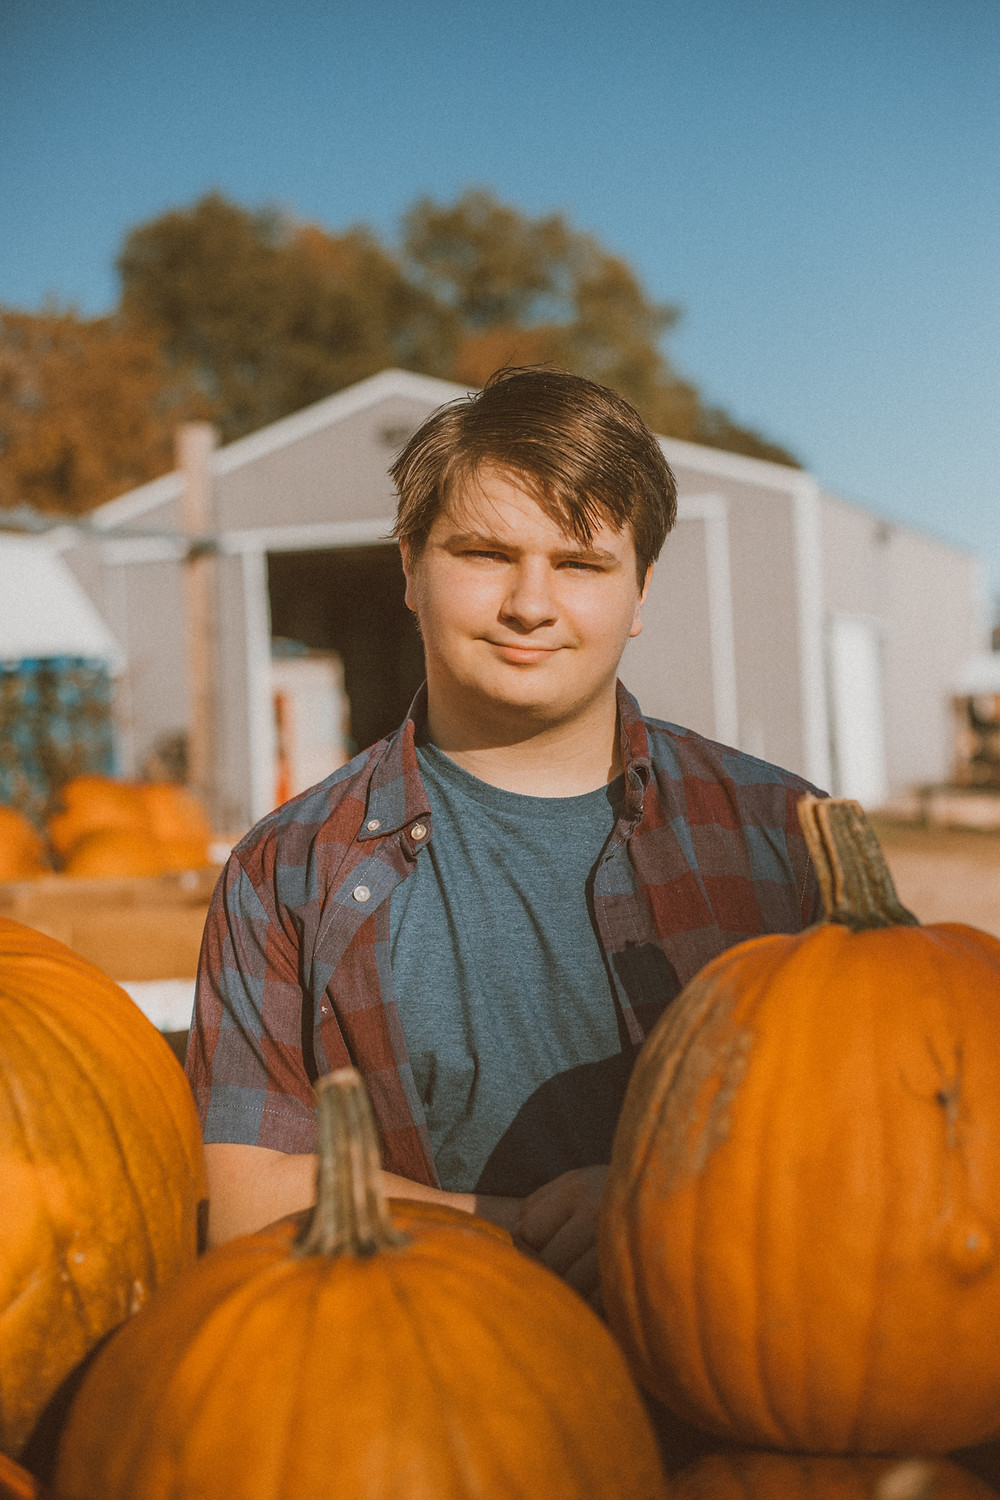 Fall mini sessions at a pumpkin farm. Lifestyle senior photography by Anna Gutermuth.